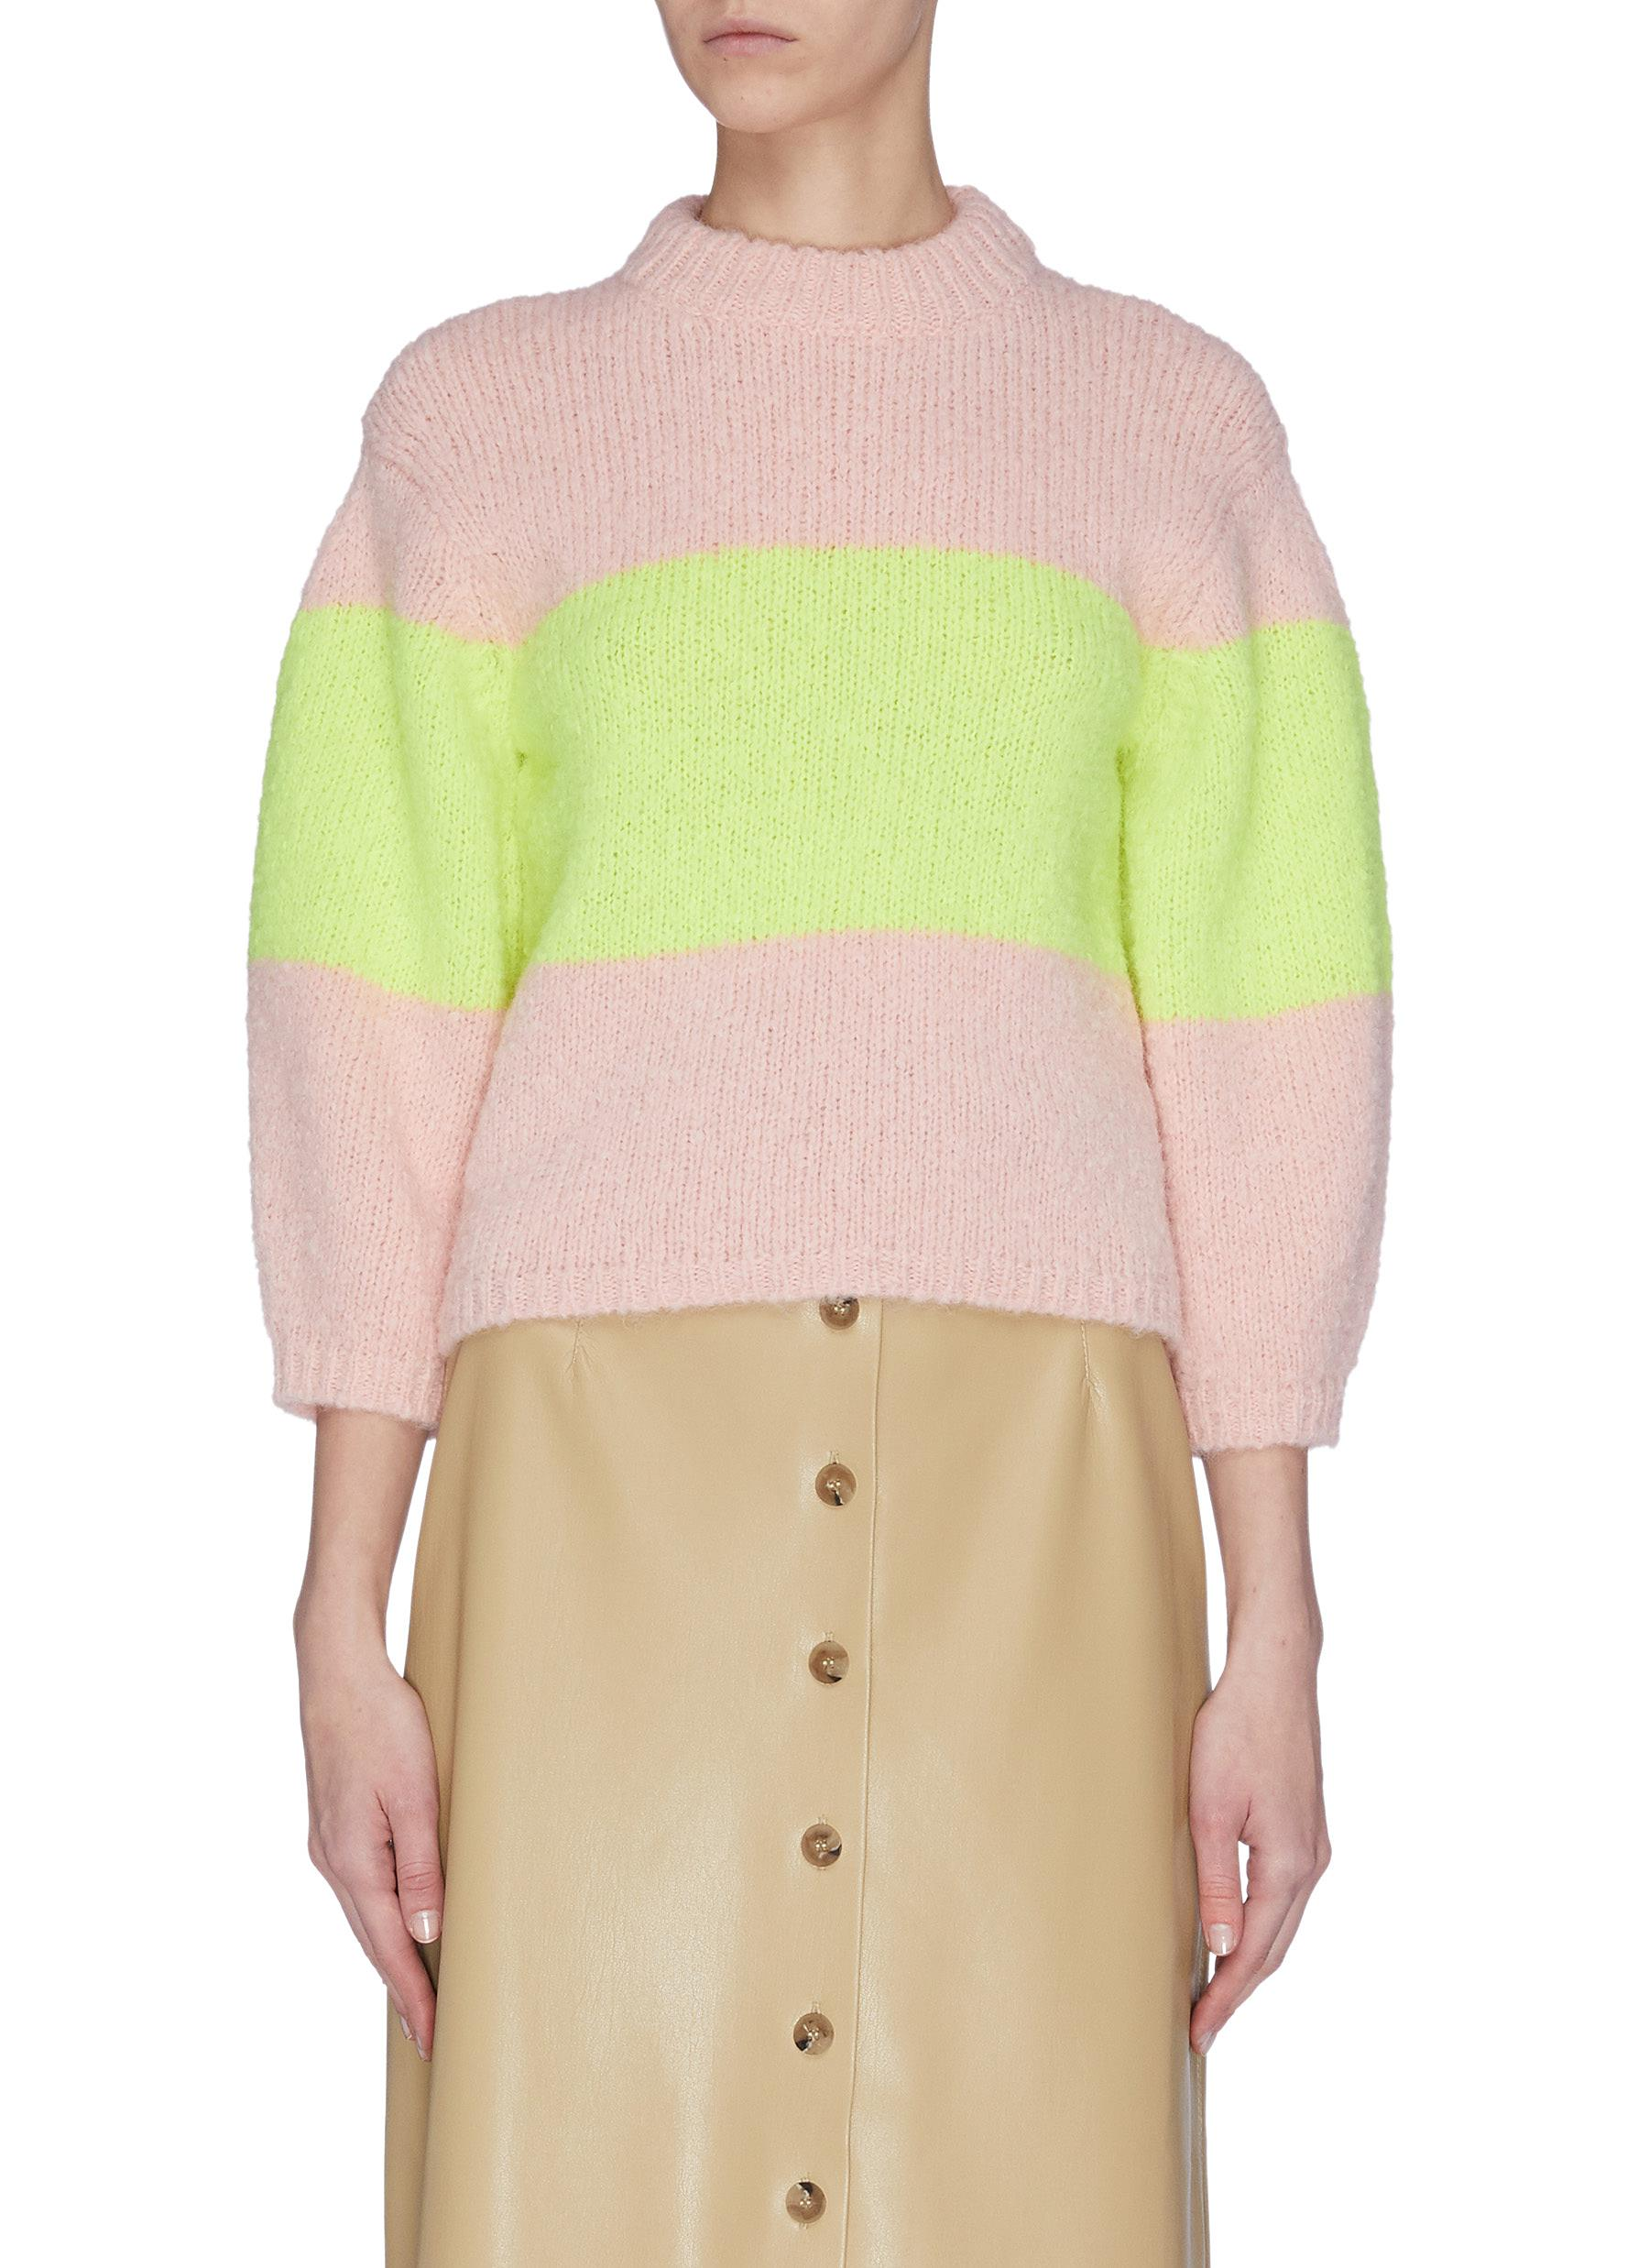 Buy Tibi Knitwear 'Cozette' colourblock intarsia alpaca wool blend sweater